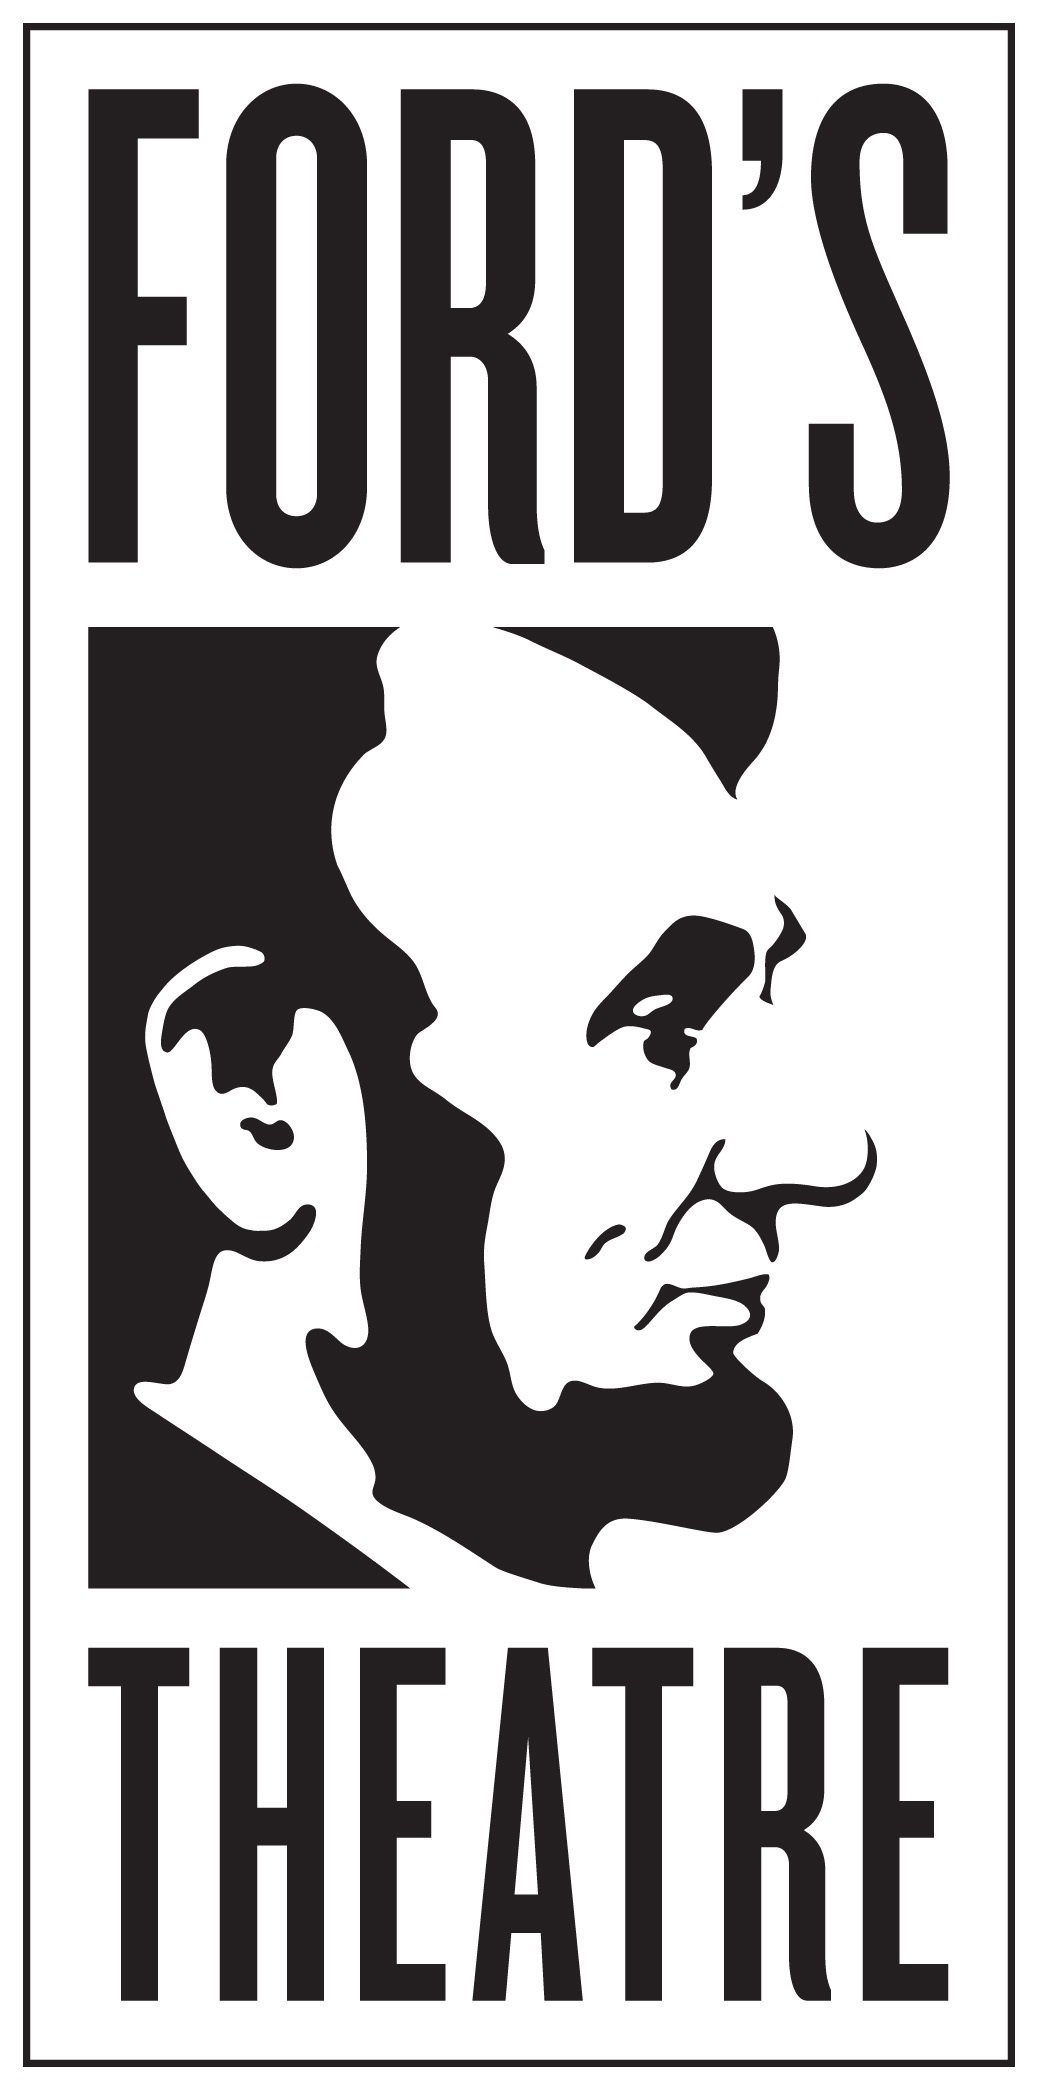 The Ford's Theatre logo.